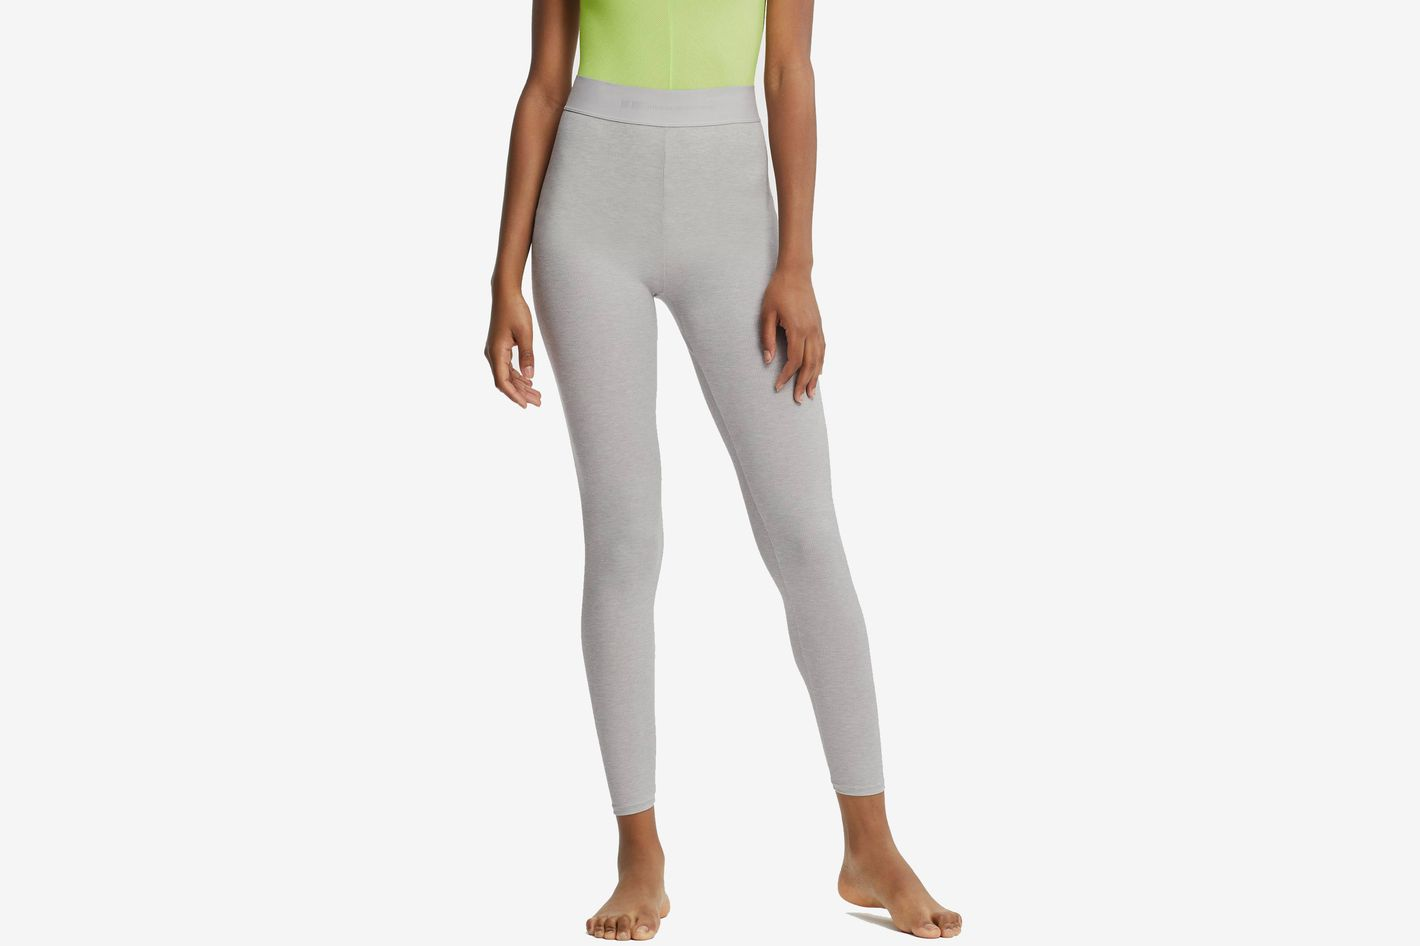 Uniqlo x Alexander Wang Women's Heattech Ribbed Leggings